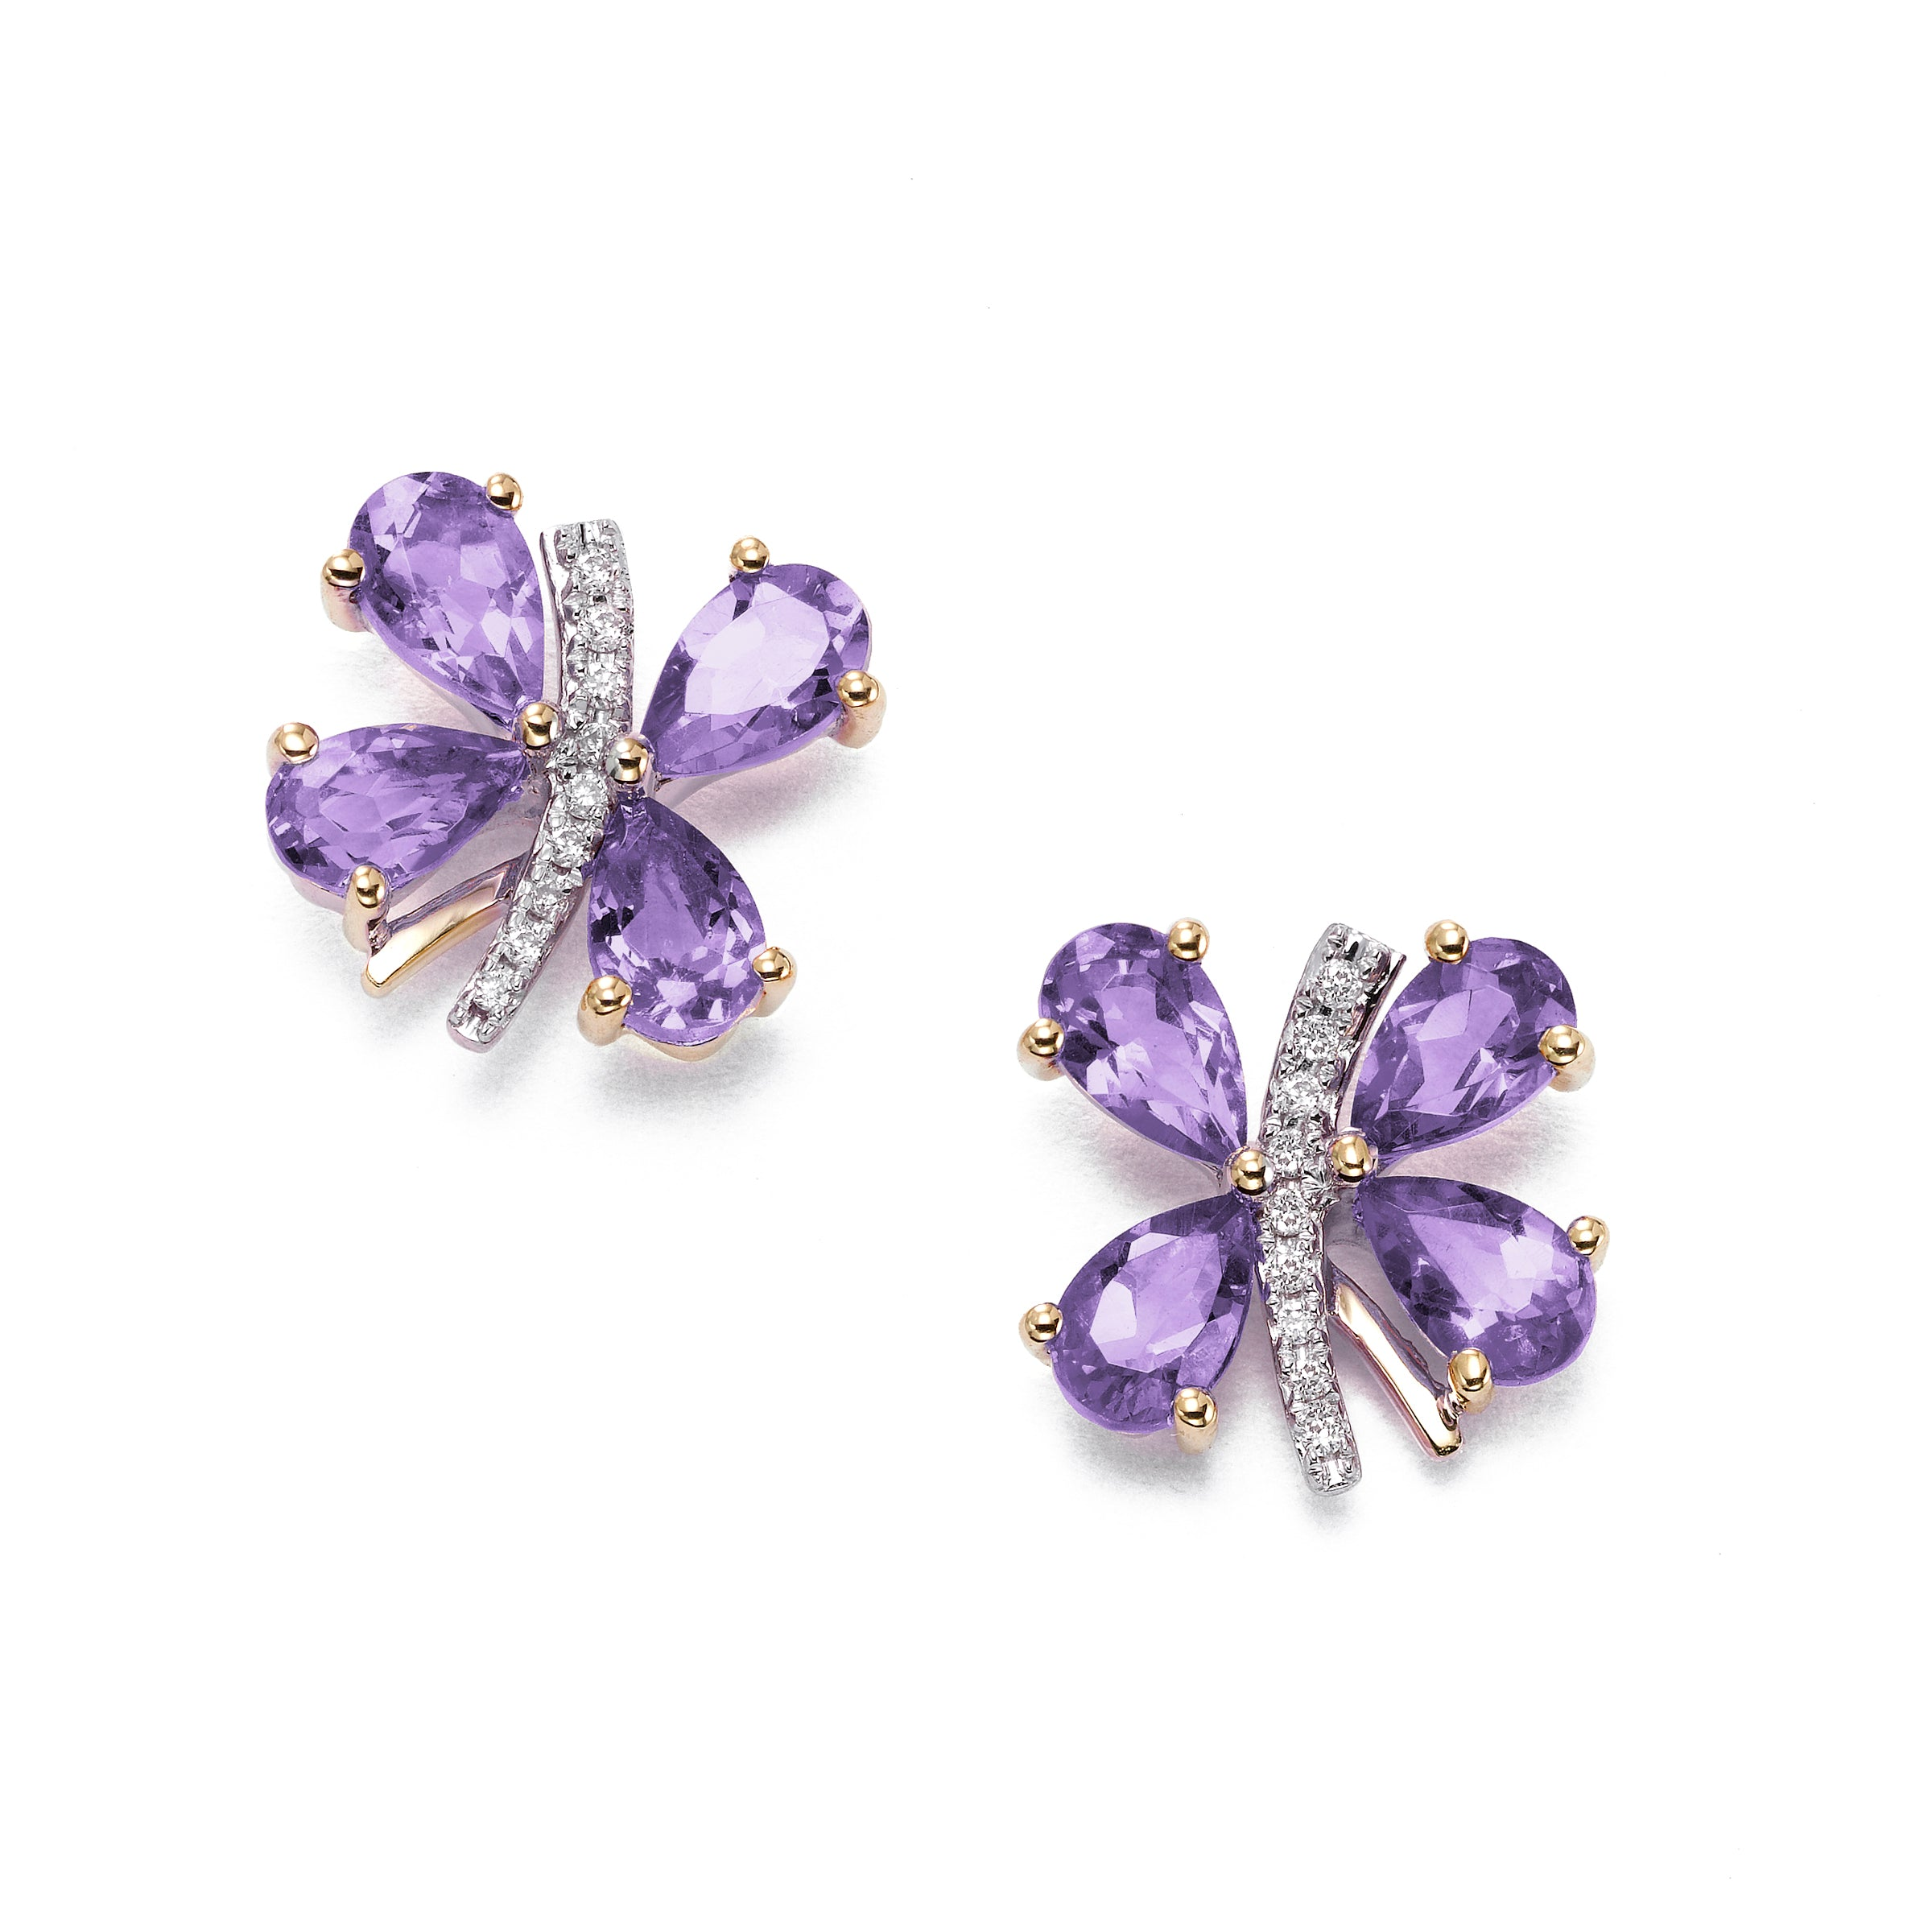 Butterfly Earrings with Amethyst and Diamonds, 14K Yellow Gold